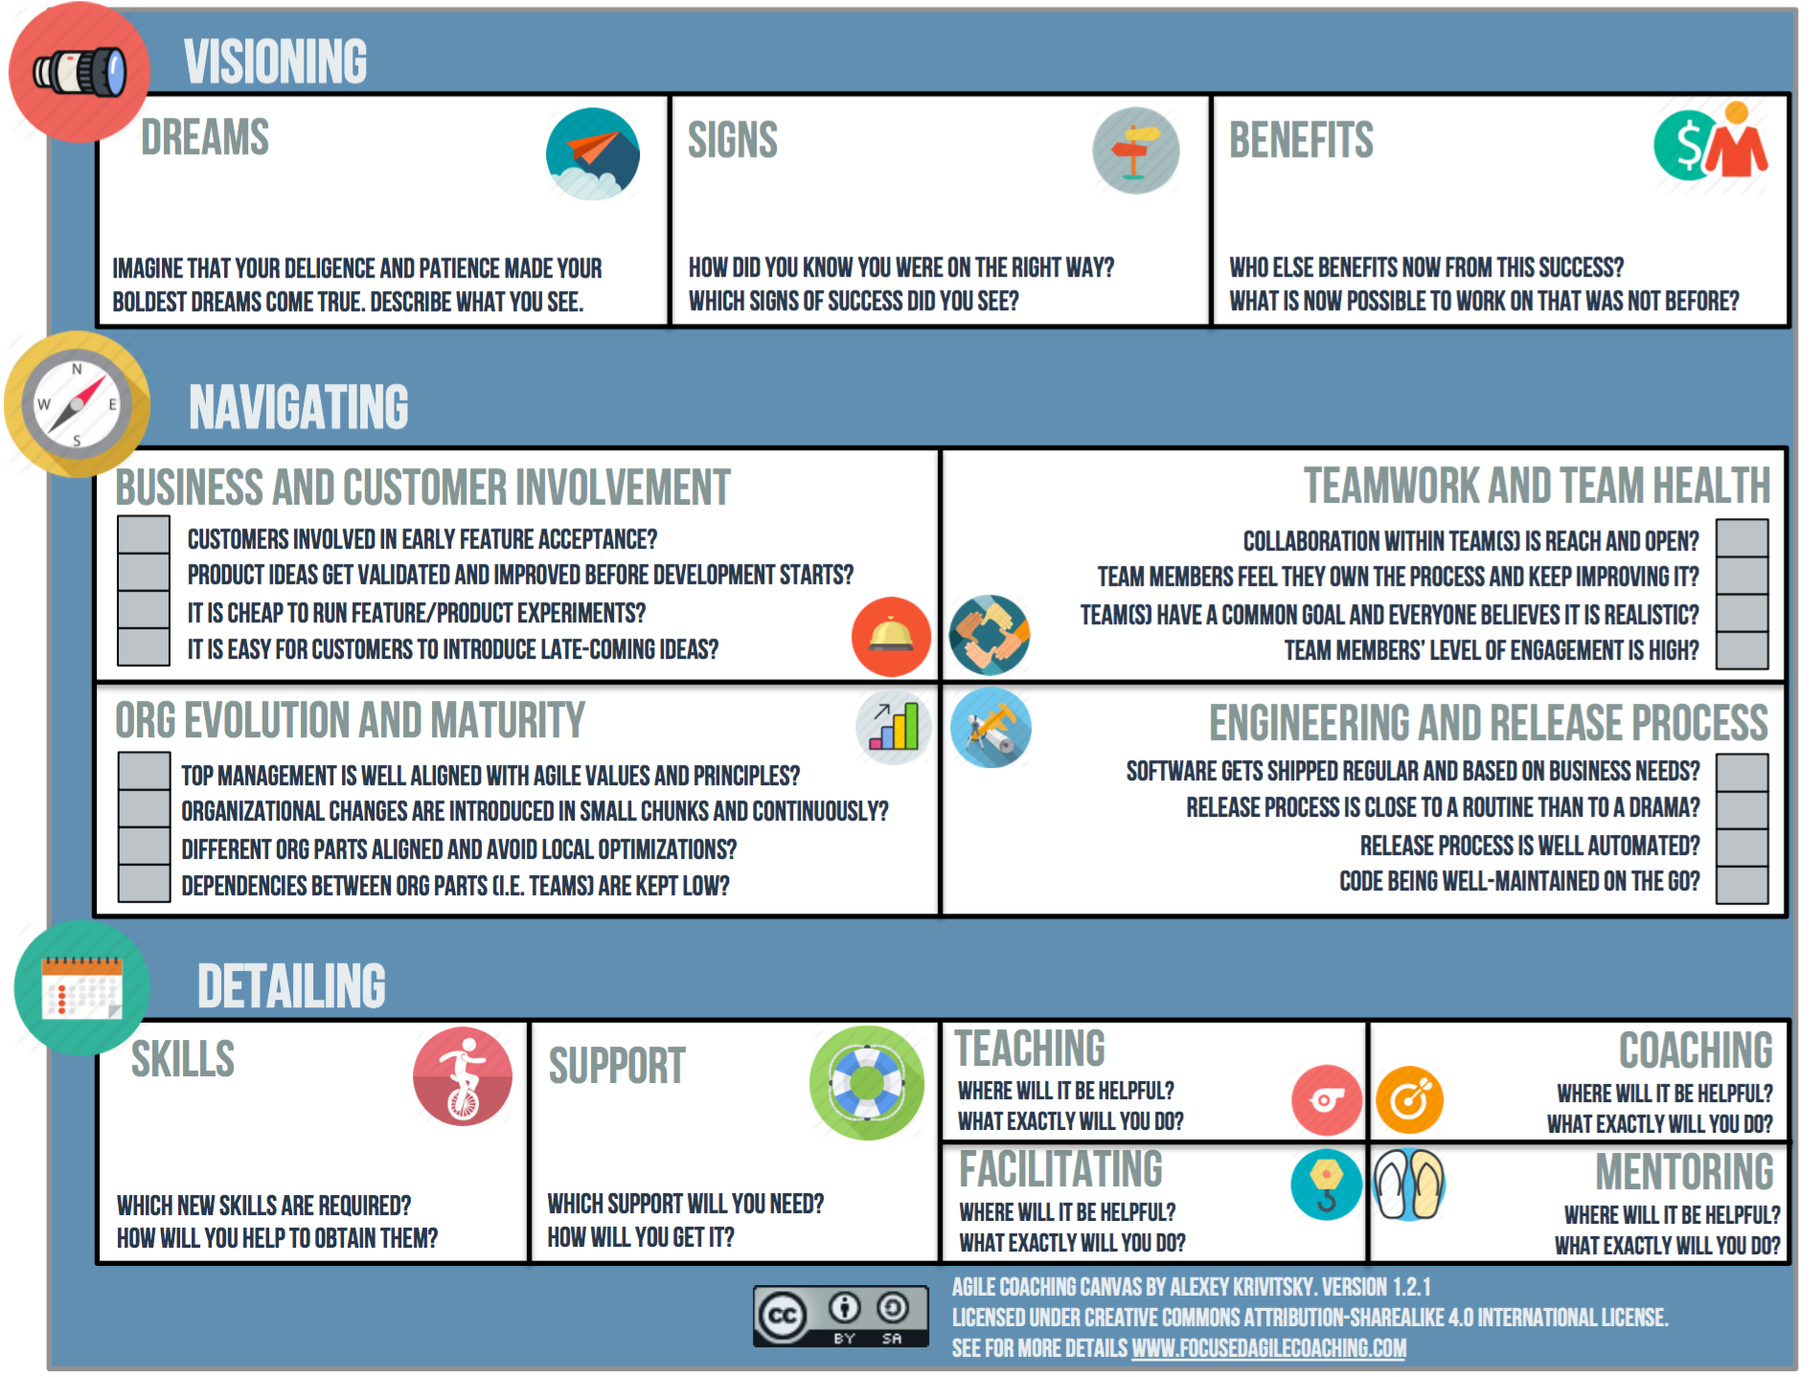 Agile Coaching in a Nutshell - This is what Agile Coaches